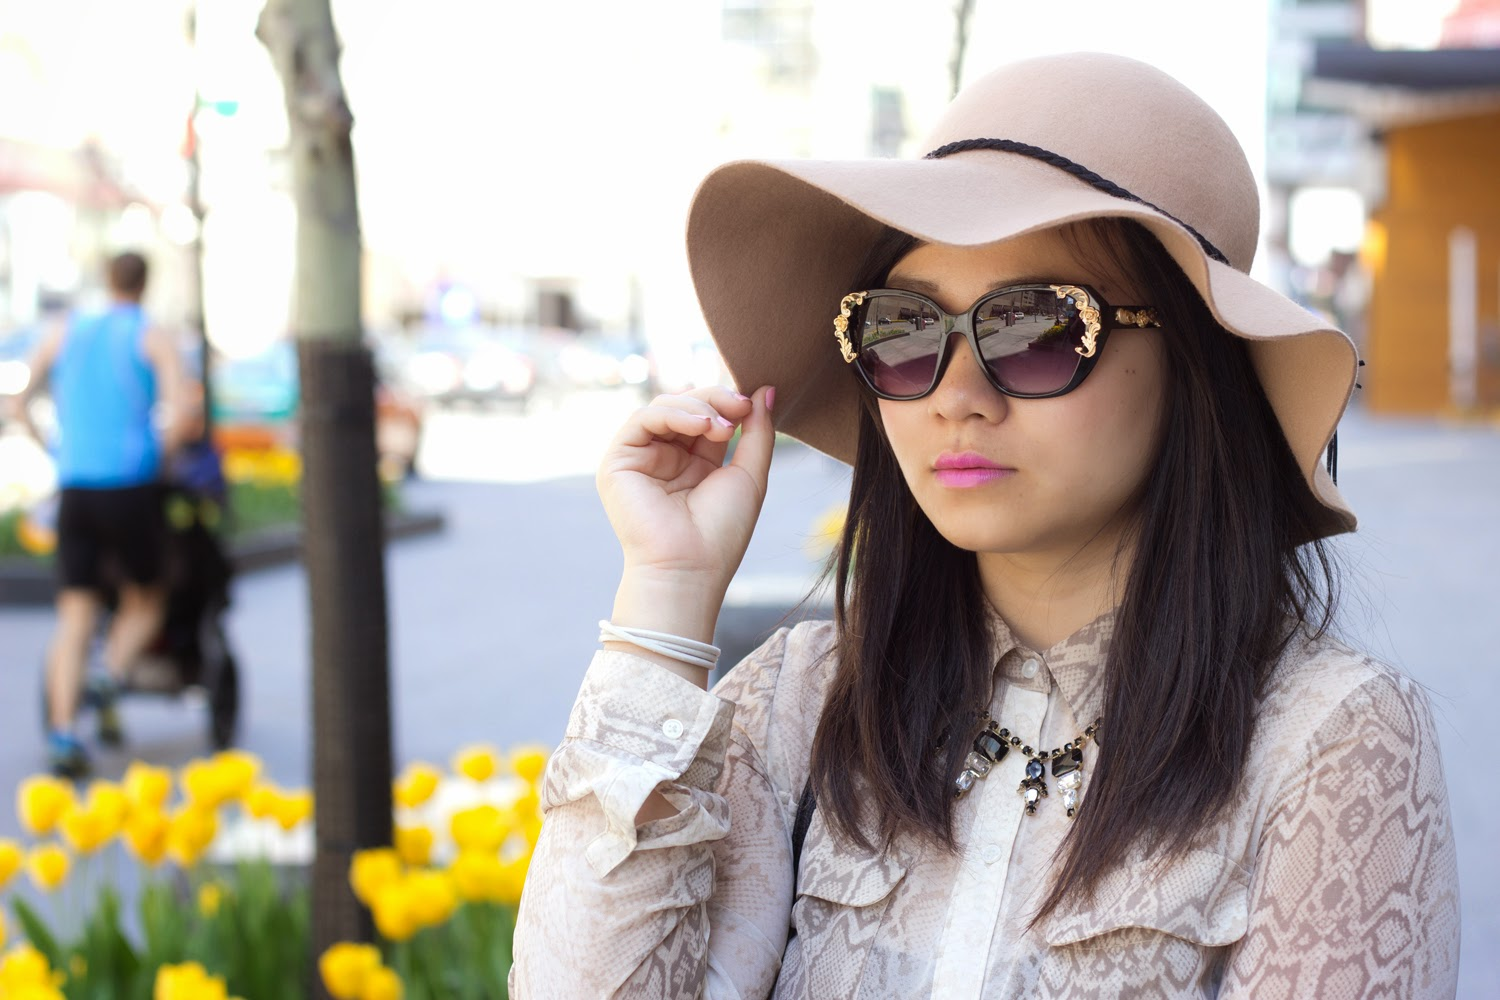 Floppy-Hat, A-J-Morgan-Sun-glasses, Snake-skin-Print-Blouse